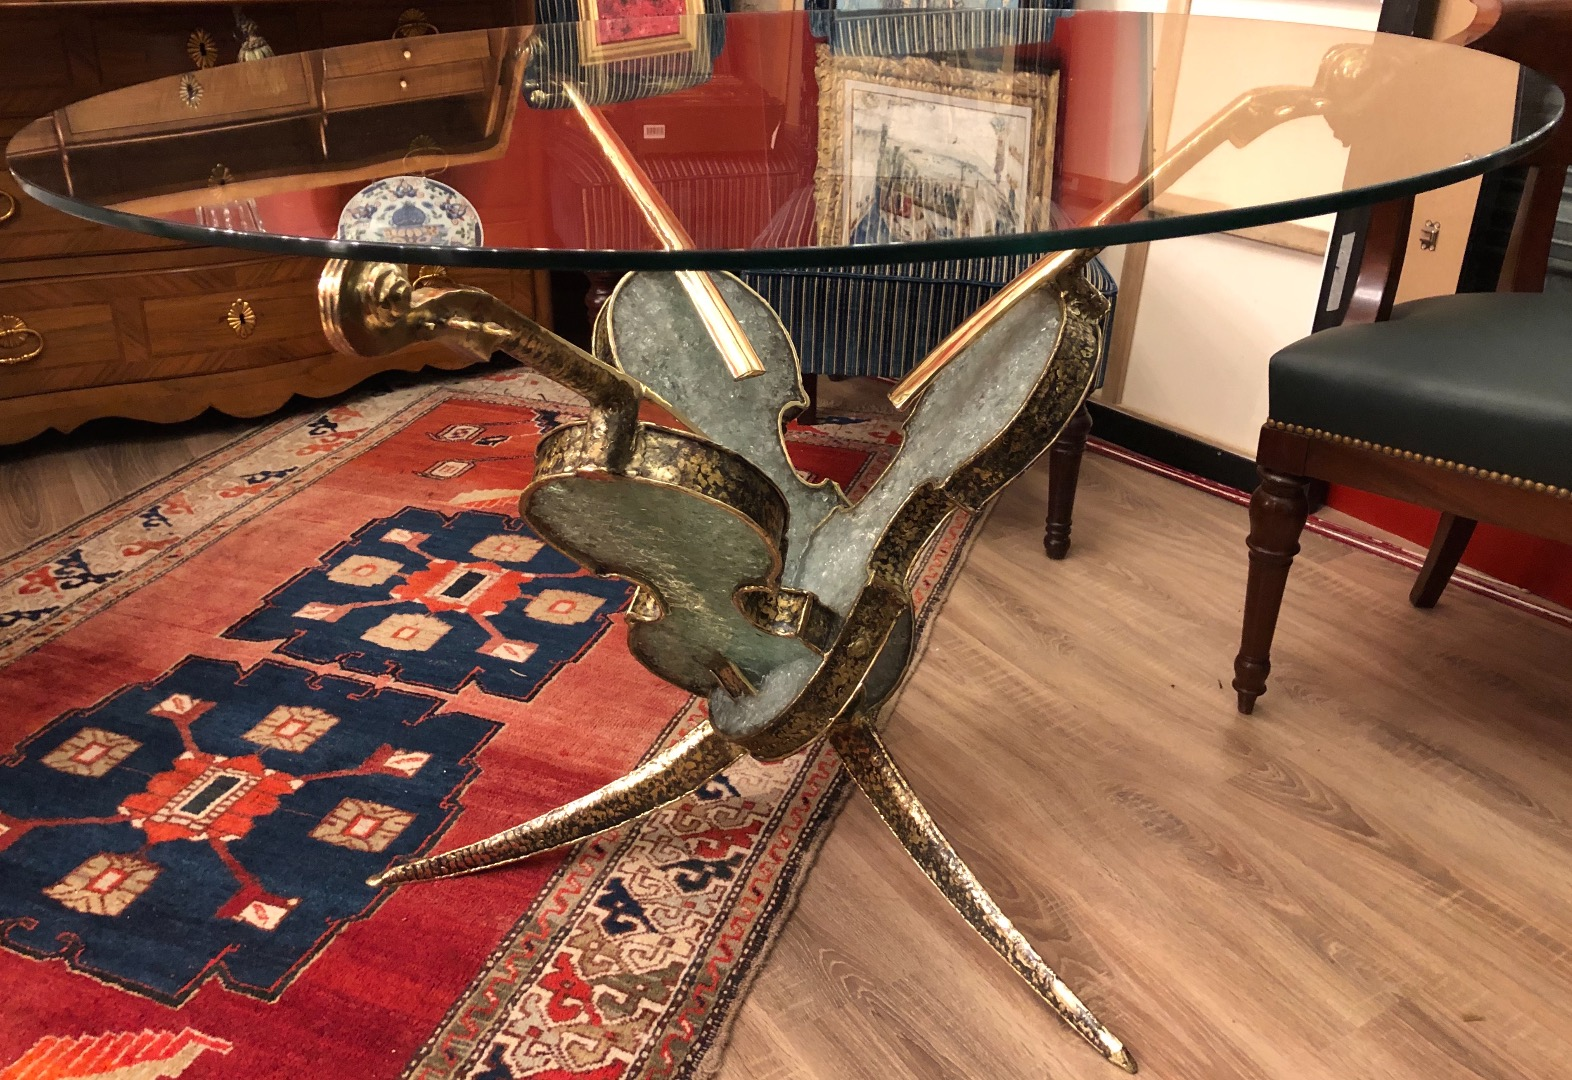 Table with three bronze violins and broken glass